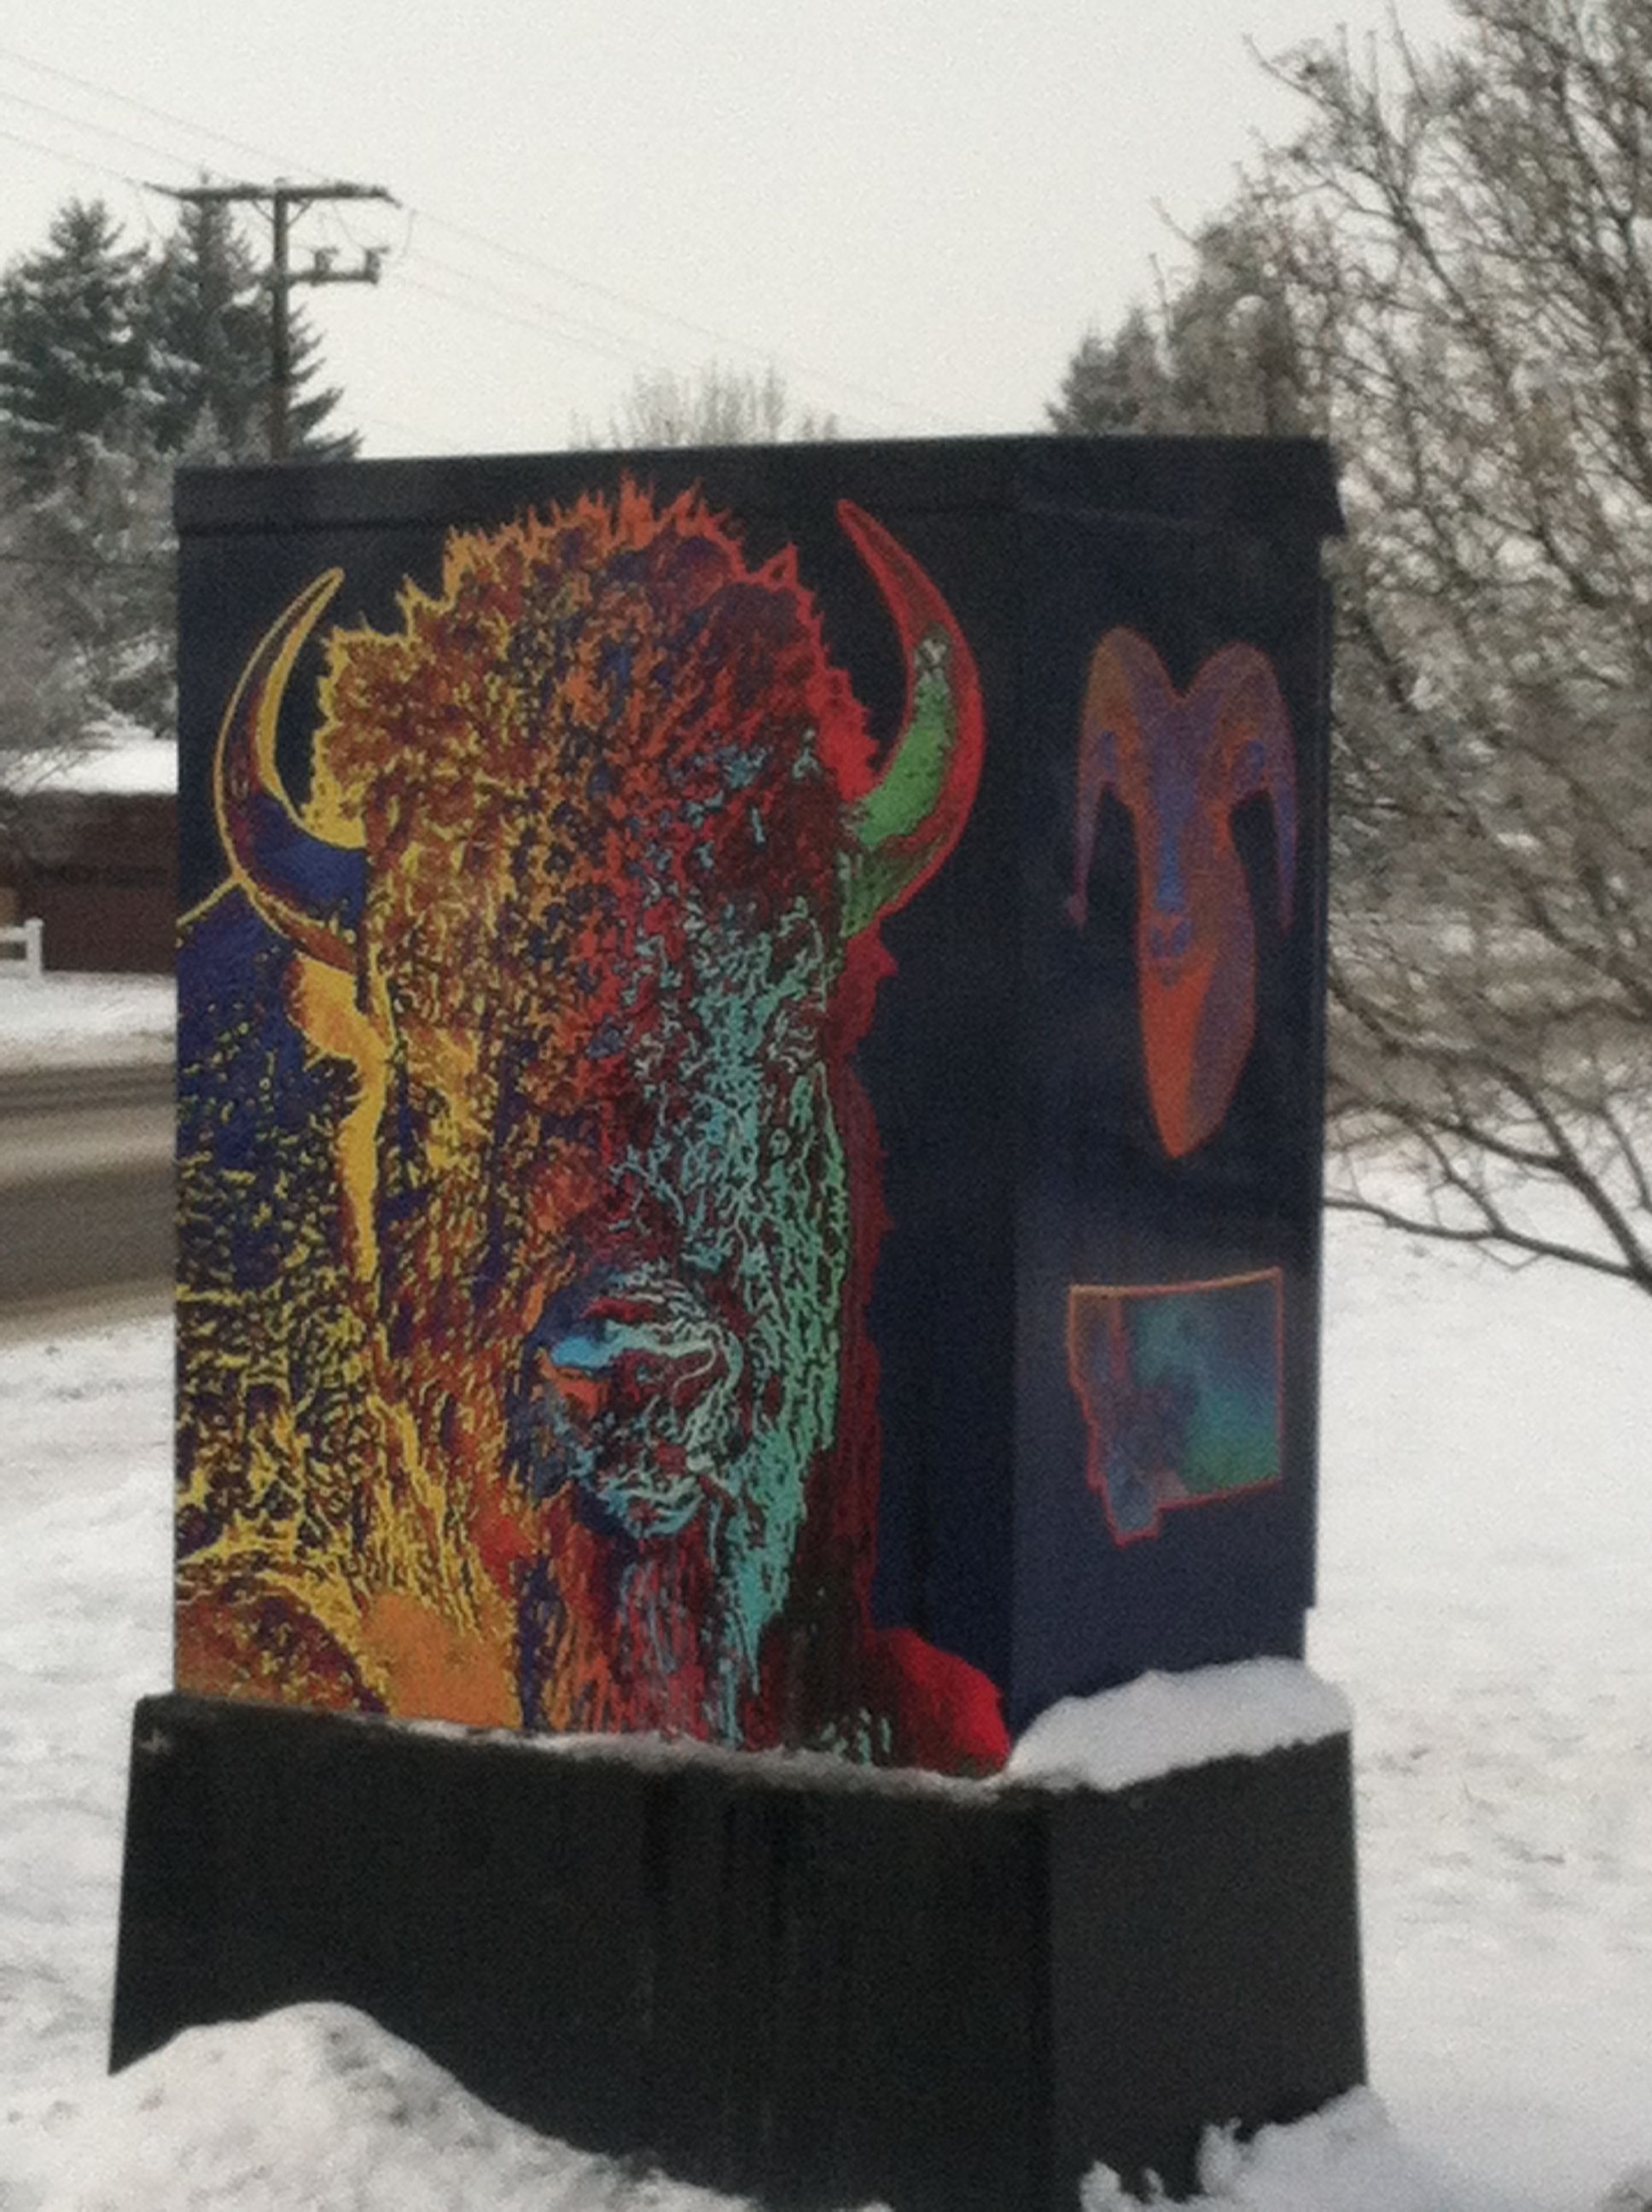 All the traffic light boxes in Missoula are individually painted by local artists.